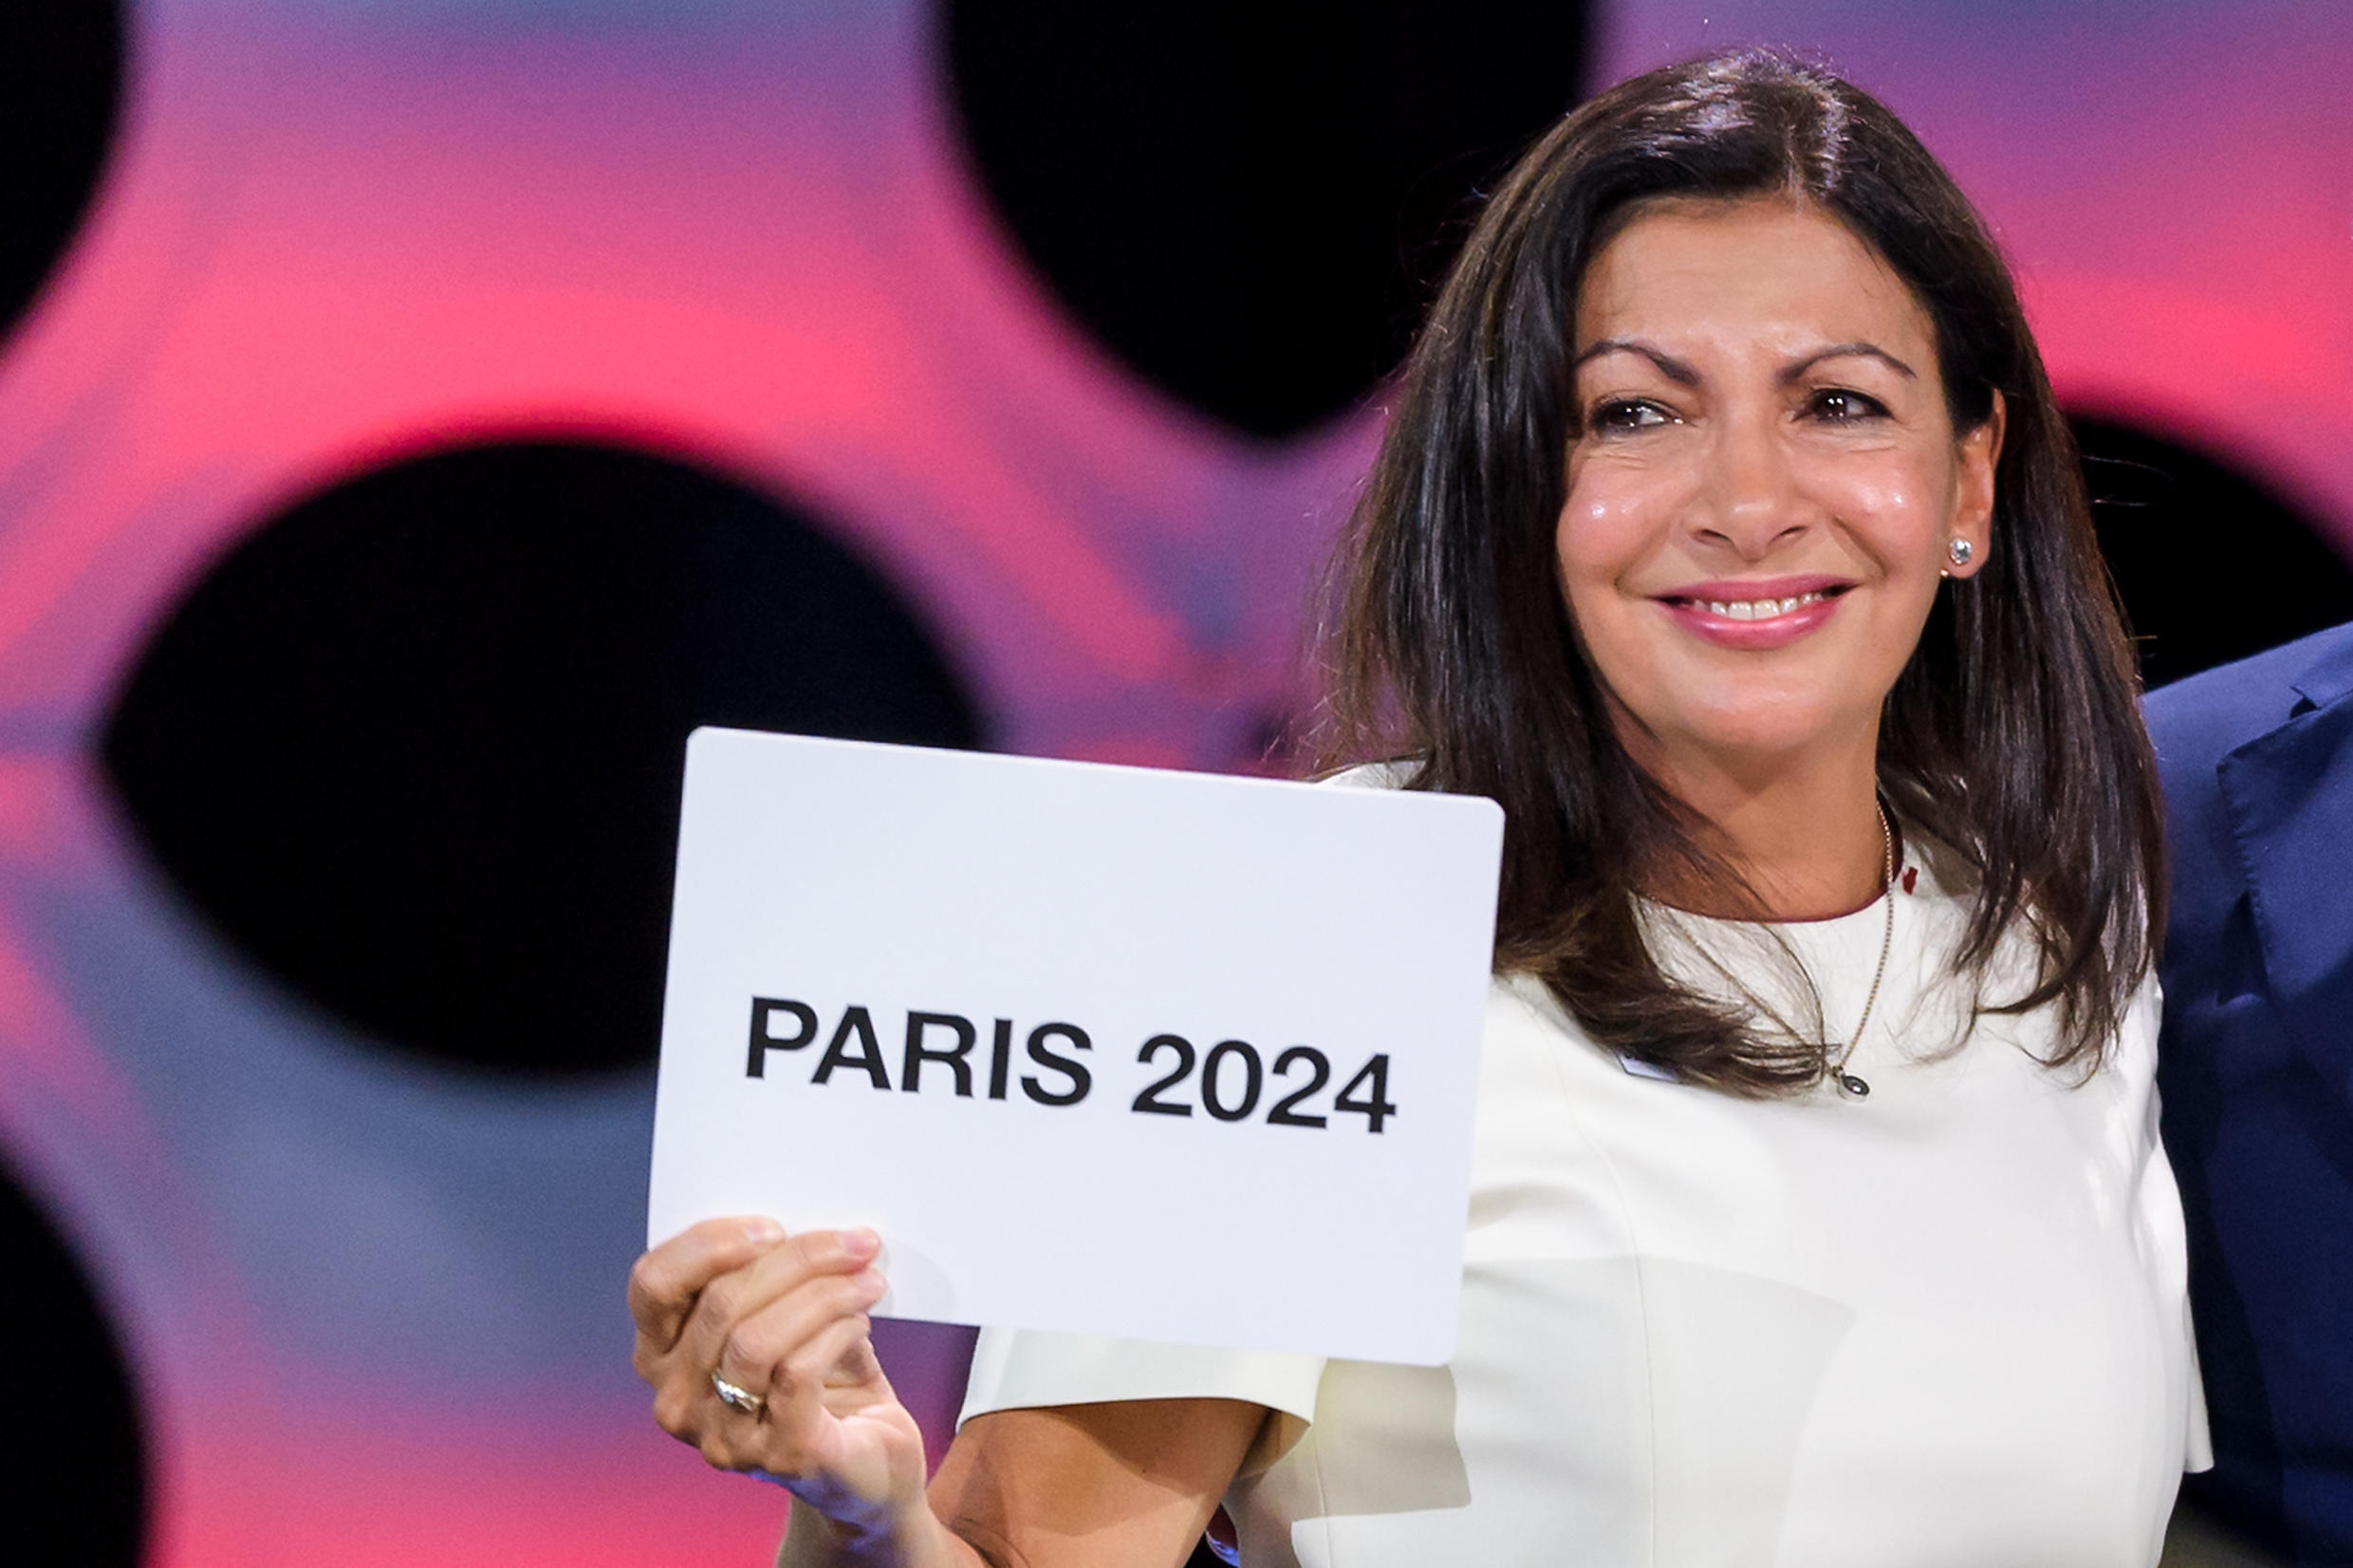 Paris Mayor Anne Hidalgo will address thousands of concert goers in Paris during the city's celebrations after being awarded the 2024 Olympic Games.